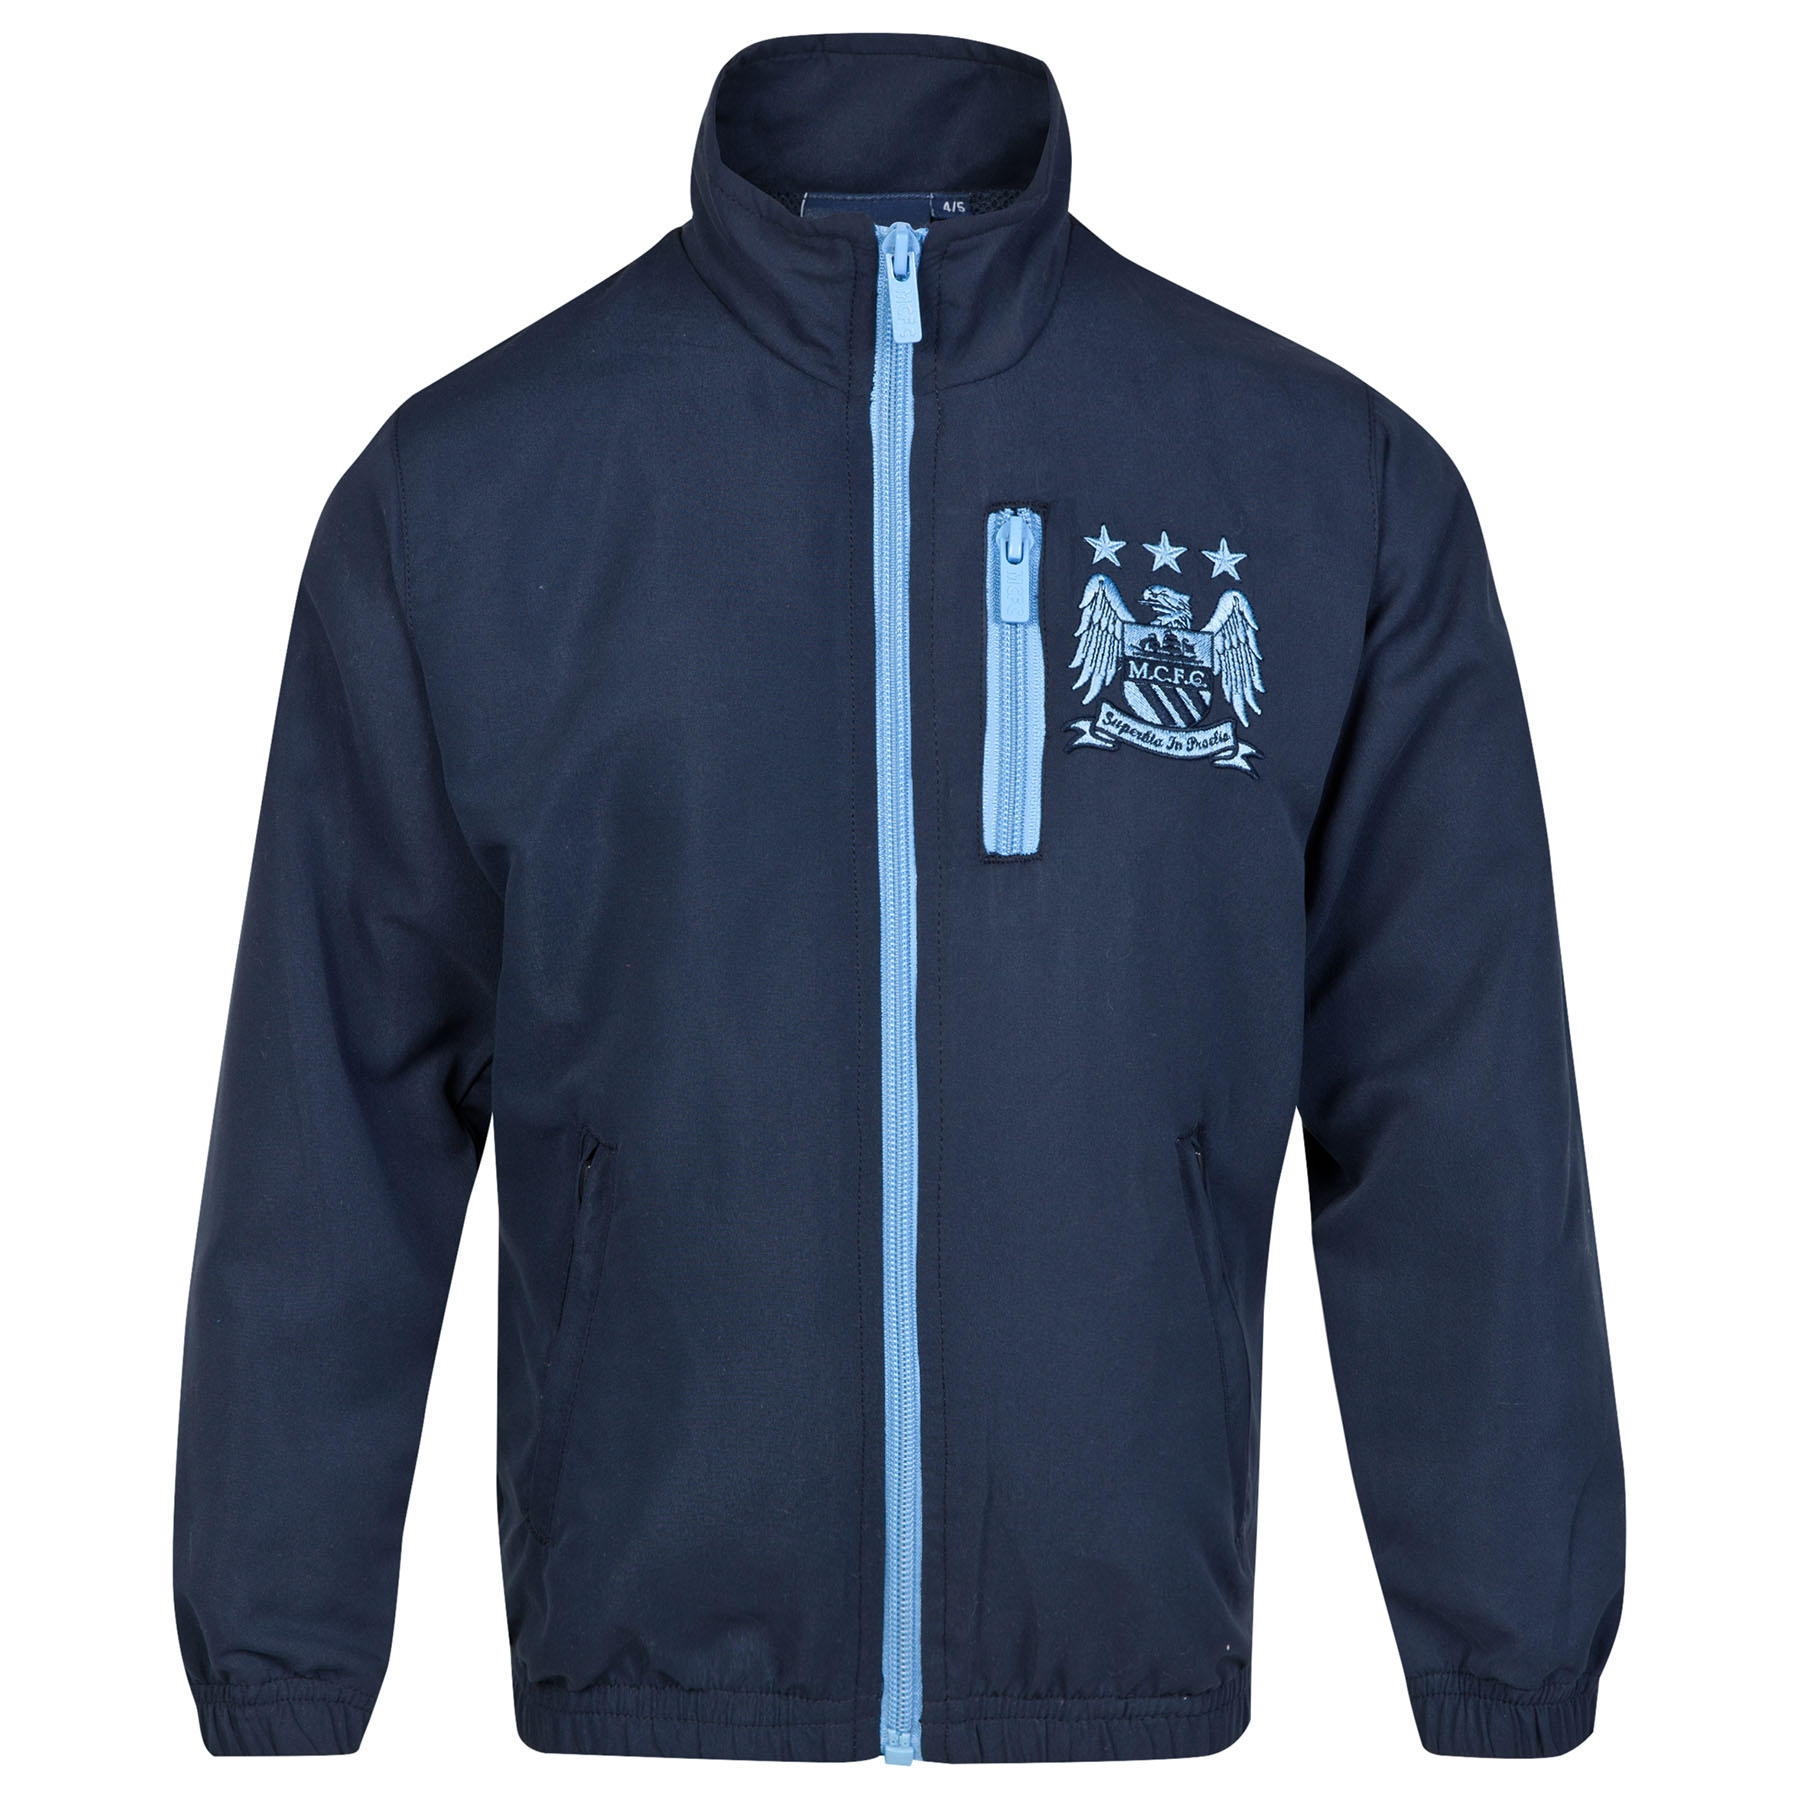 Manchester City Classic Track Jacket- Navy - Infant Boys